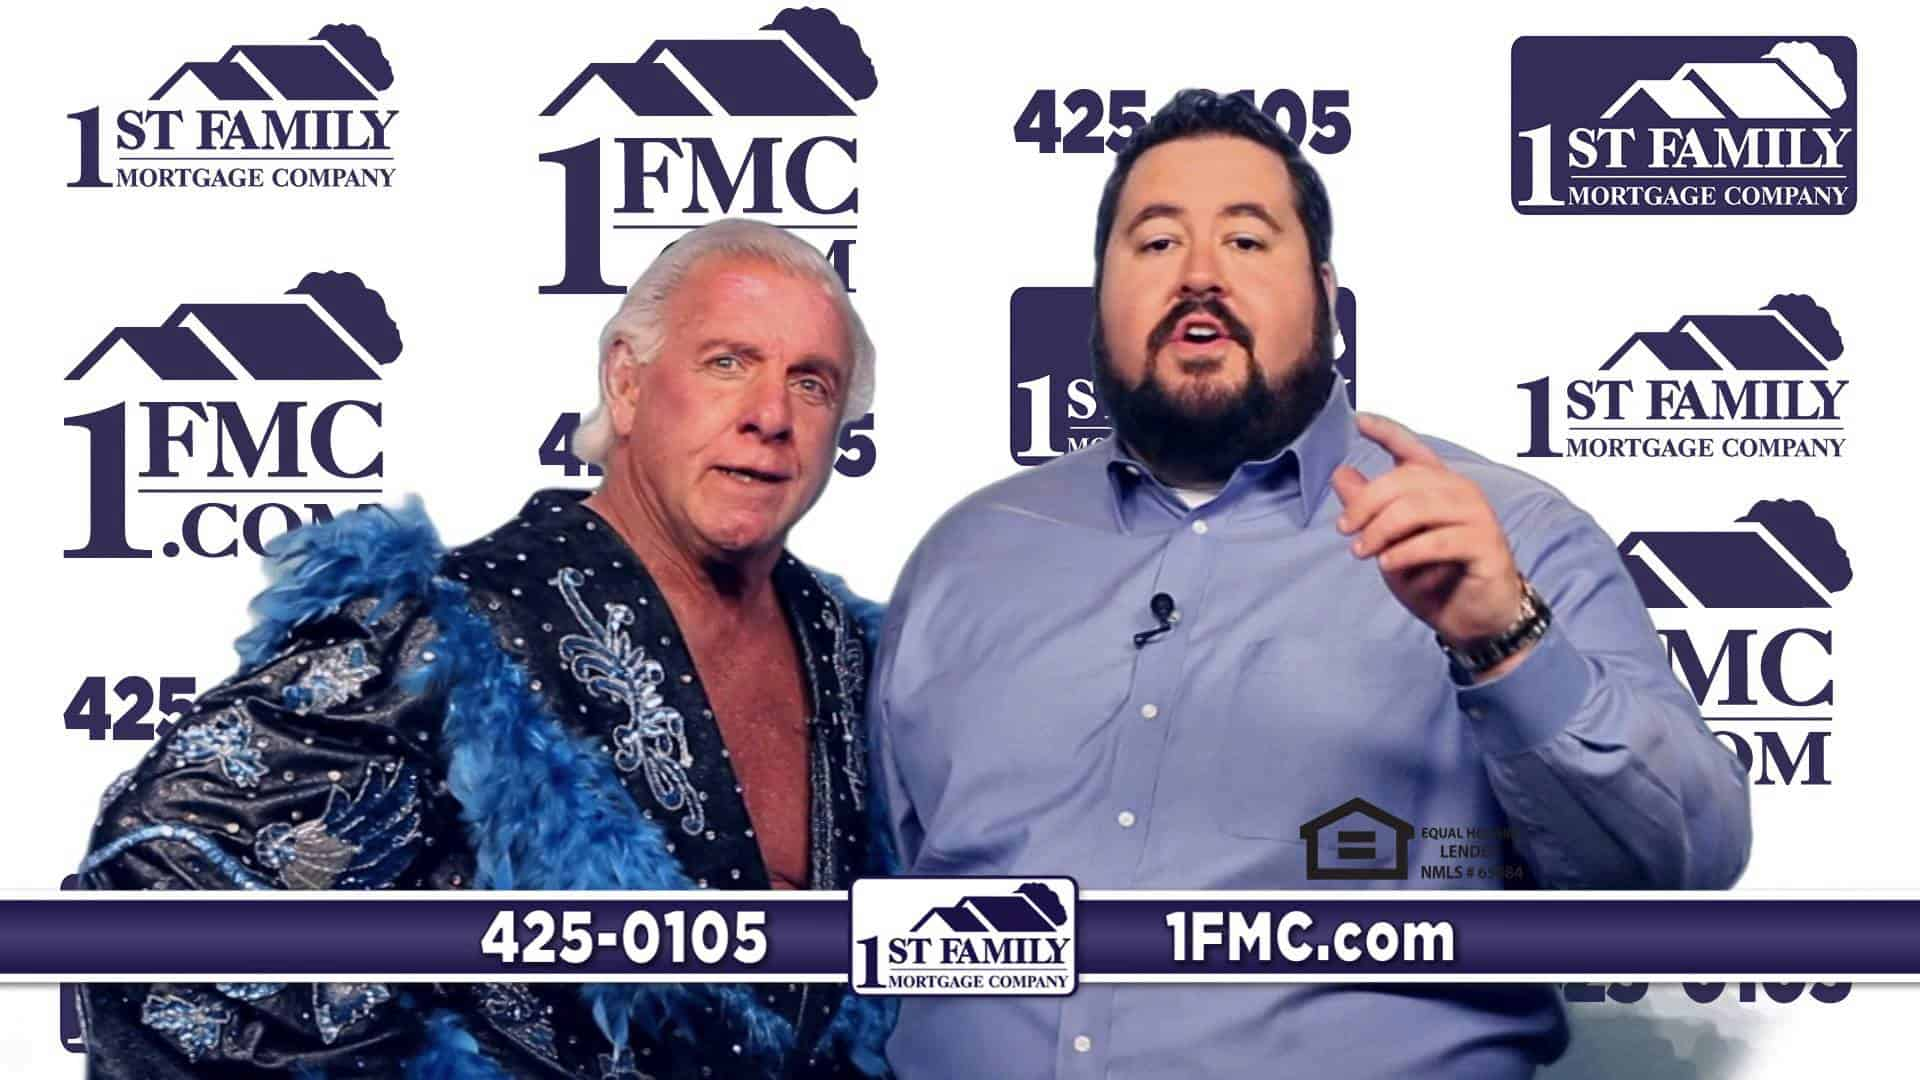 Conrad Thompson with Rick Flair in an ad for his Mortgage Company, 1st Family 1fmc. com